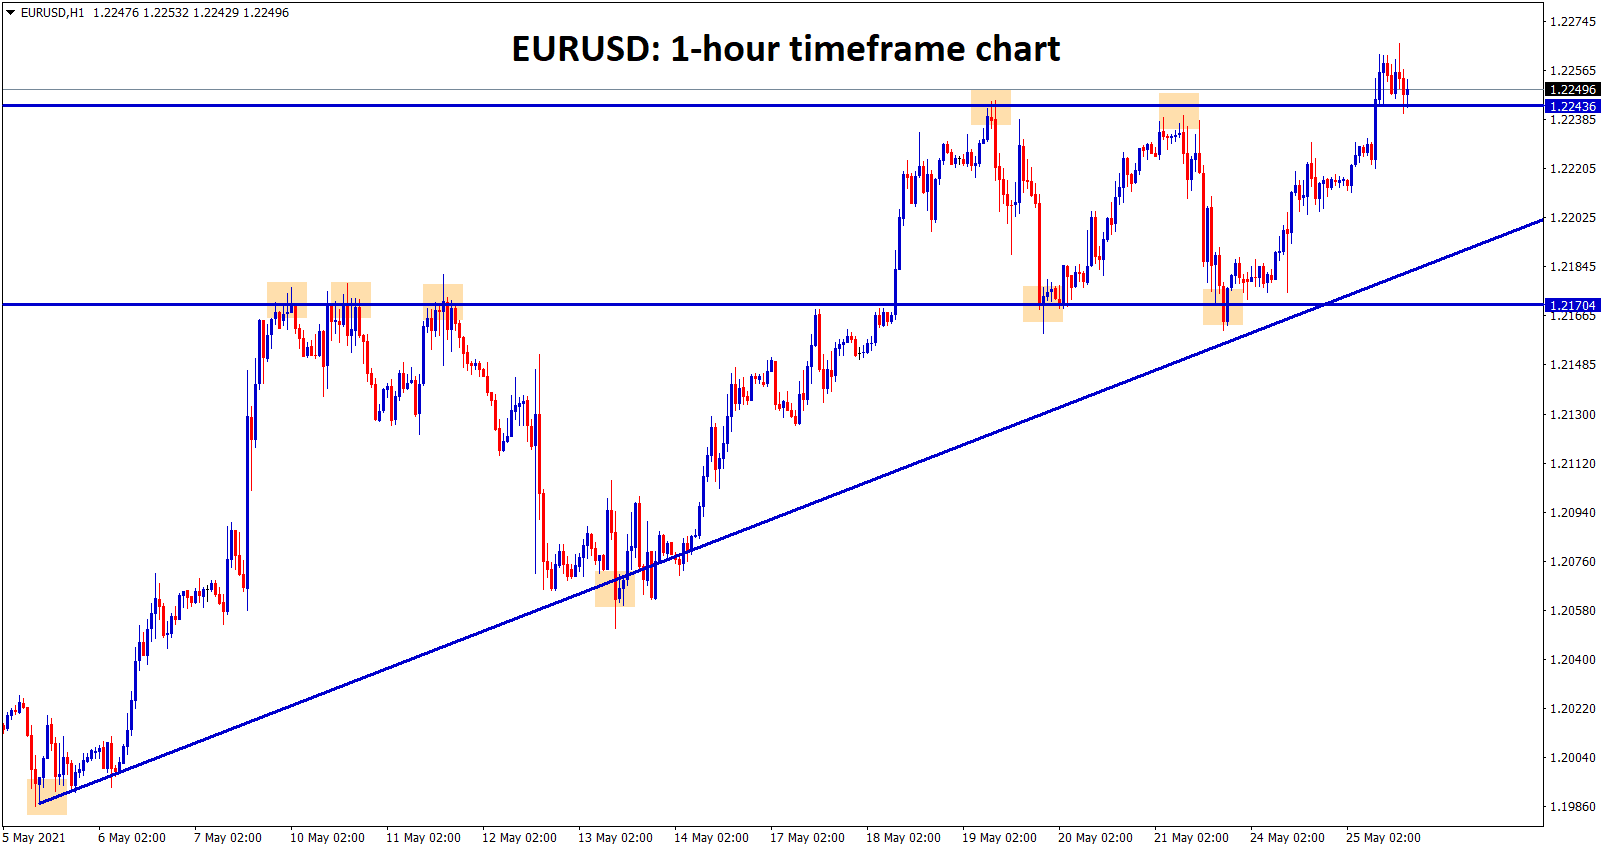 EURUSD reached the top resistance level by continuing its uptrend